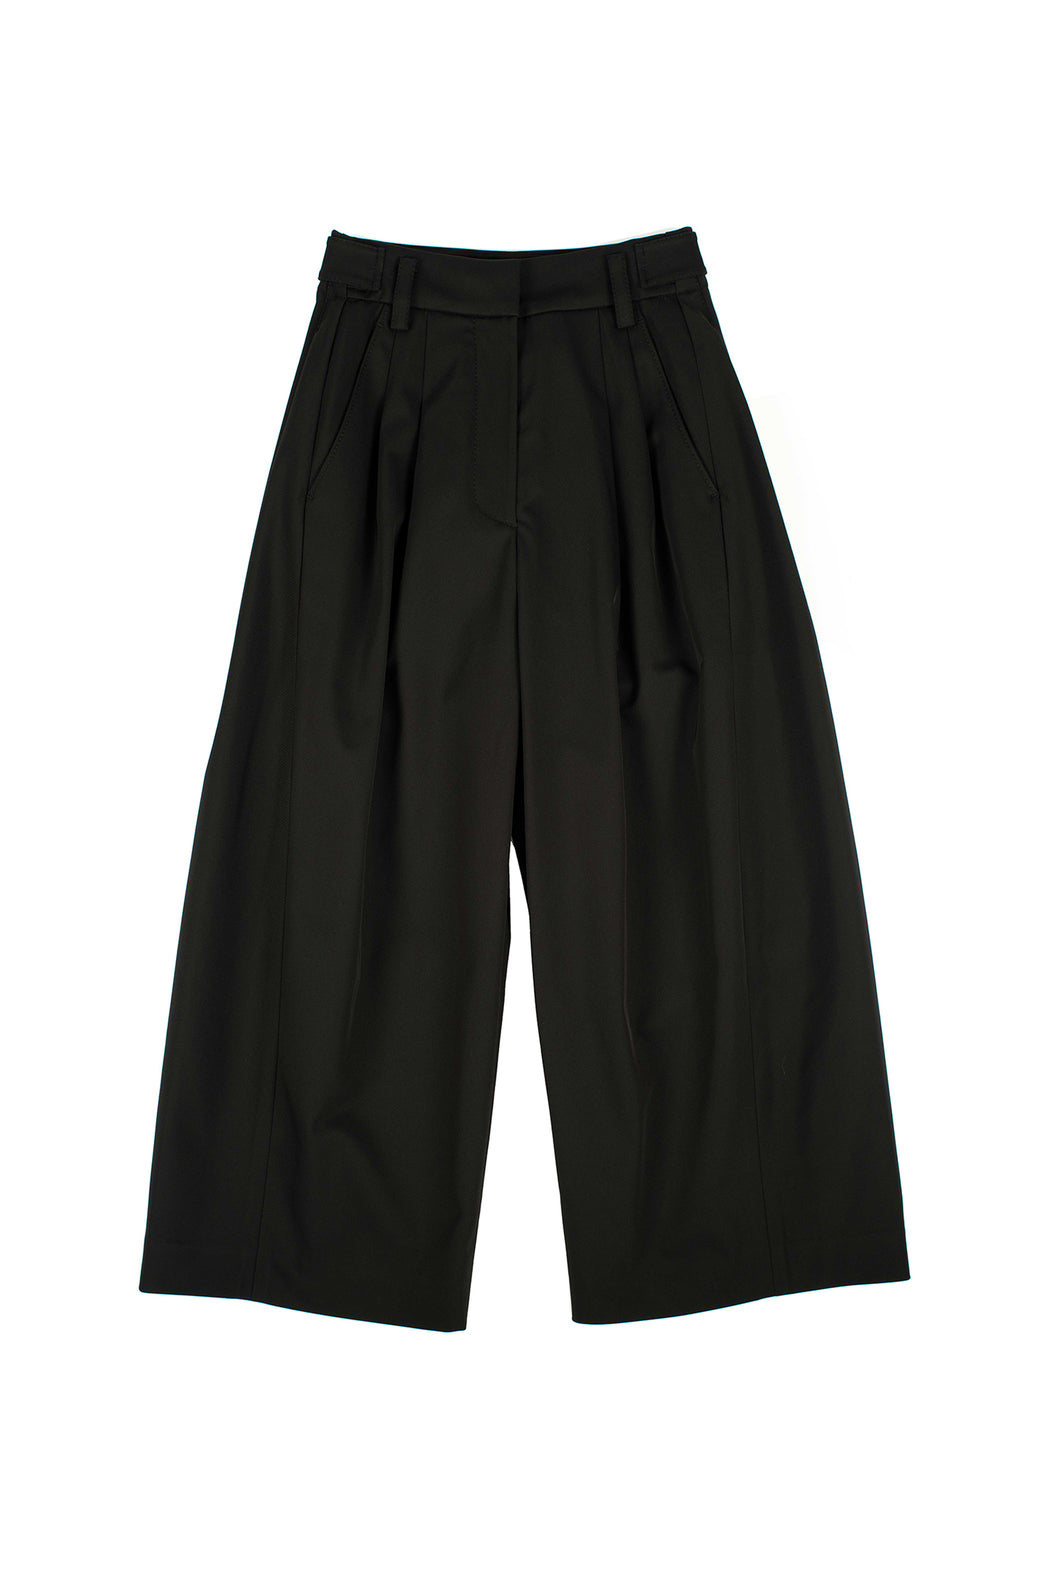 Midi Length Wide Pants - Black